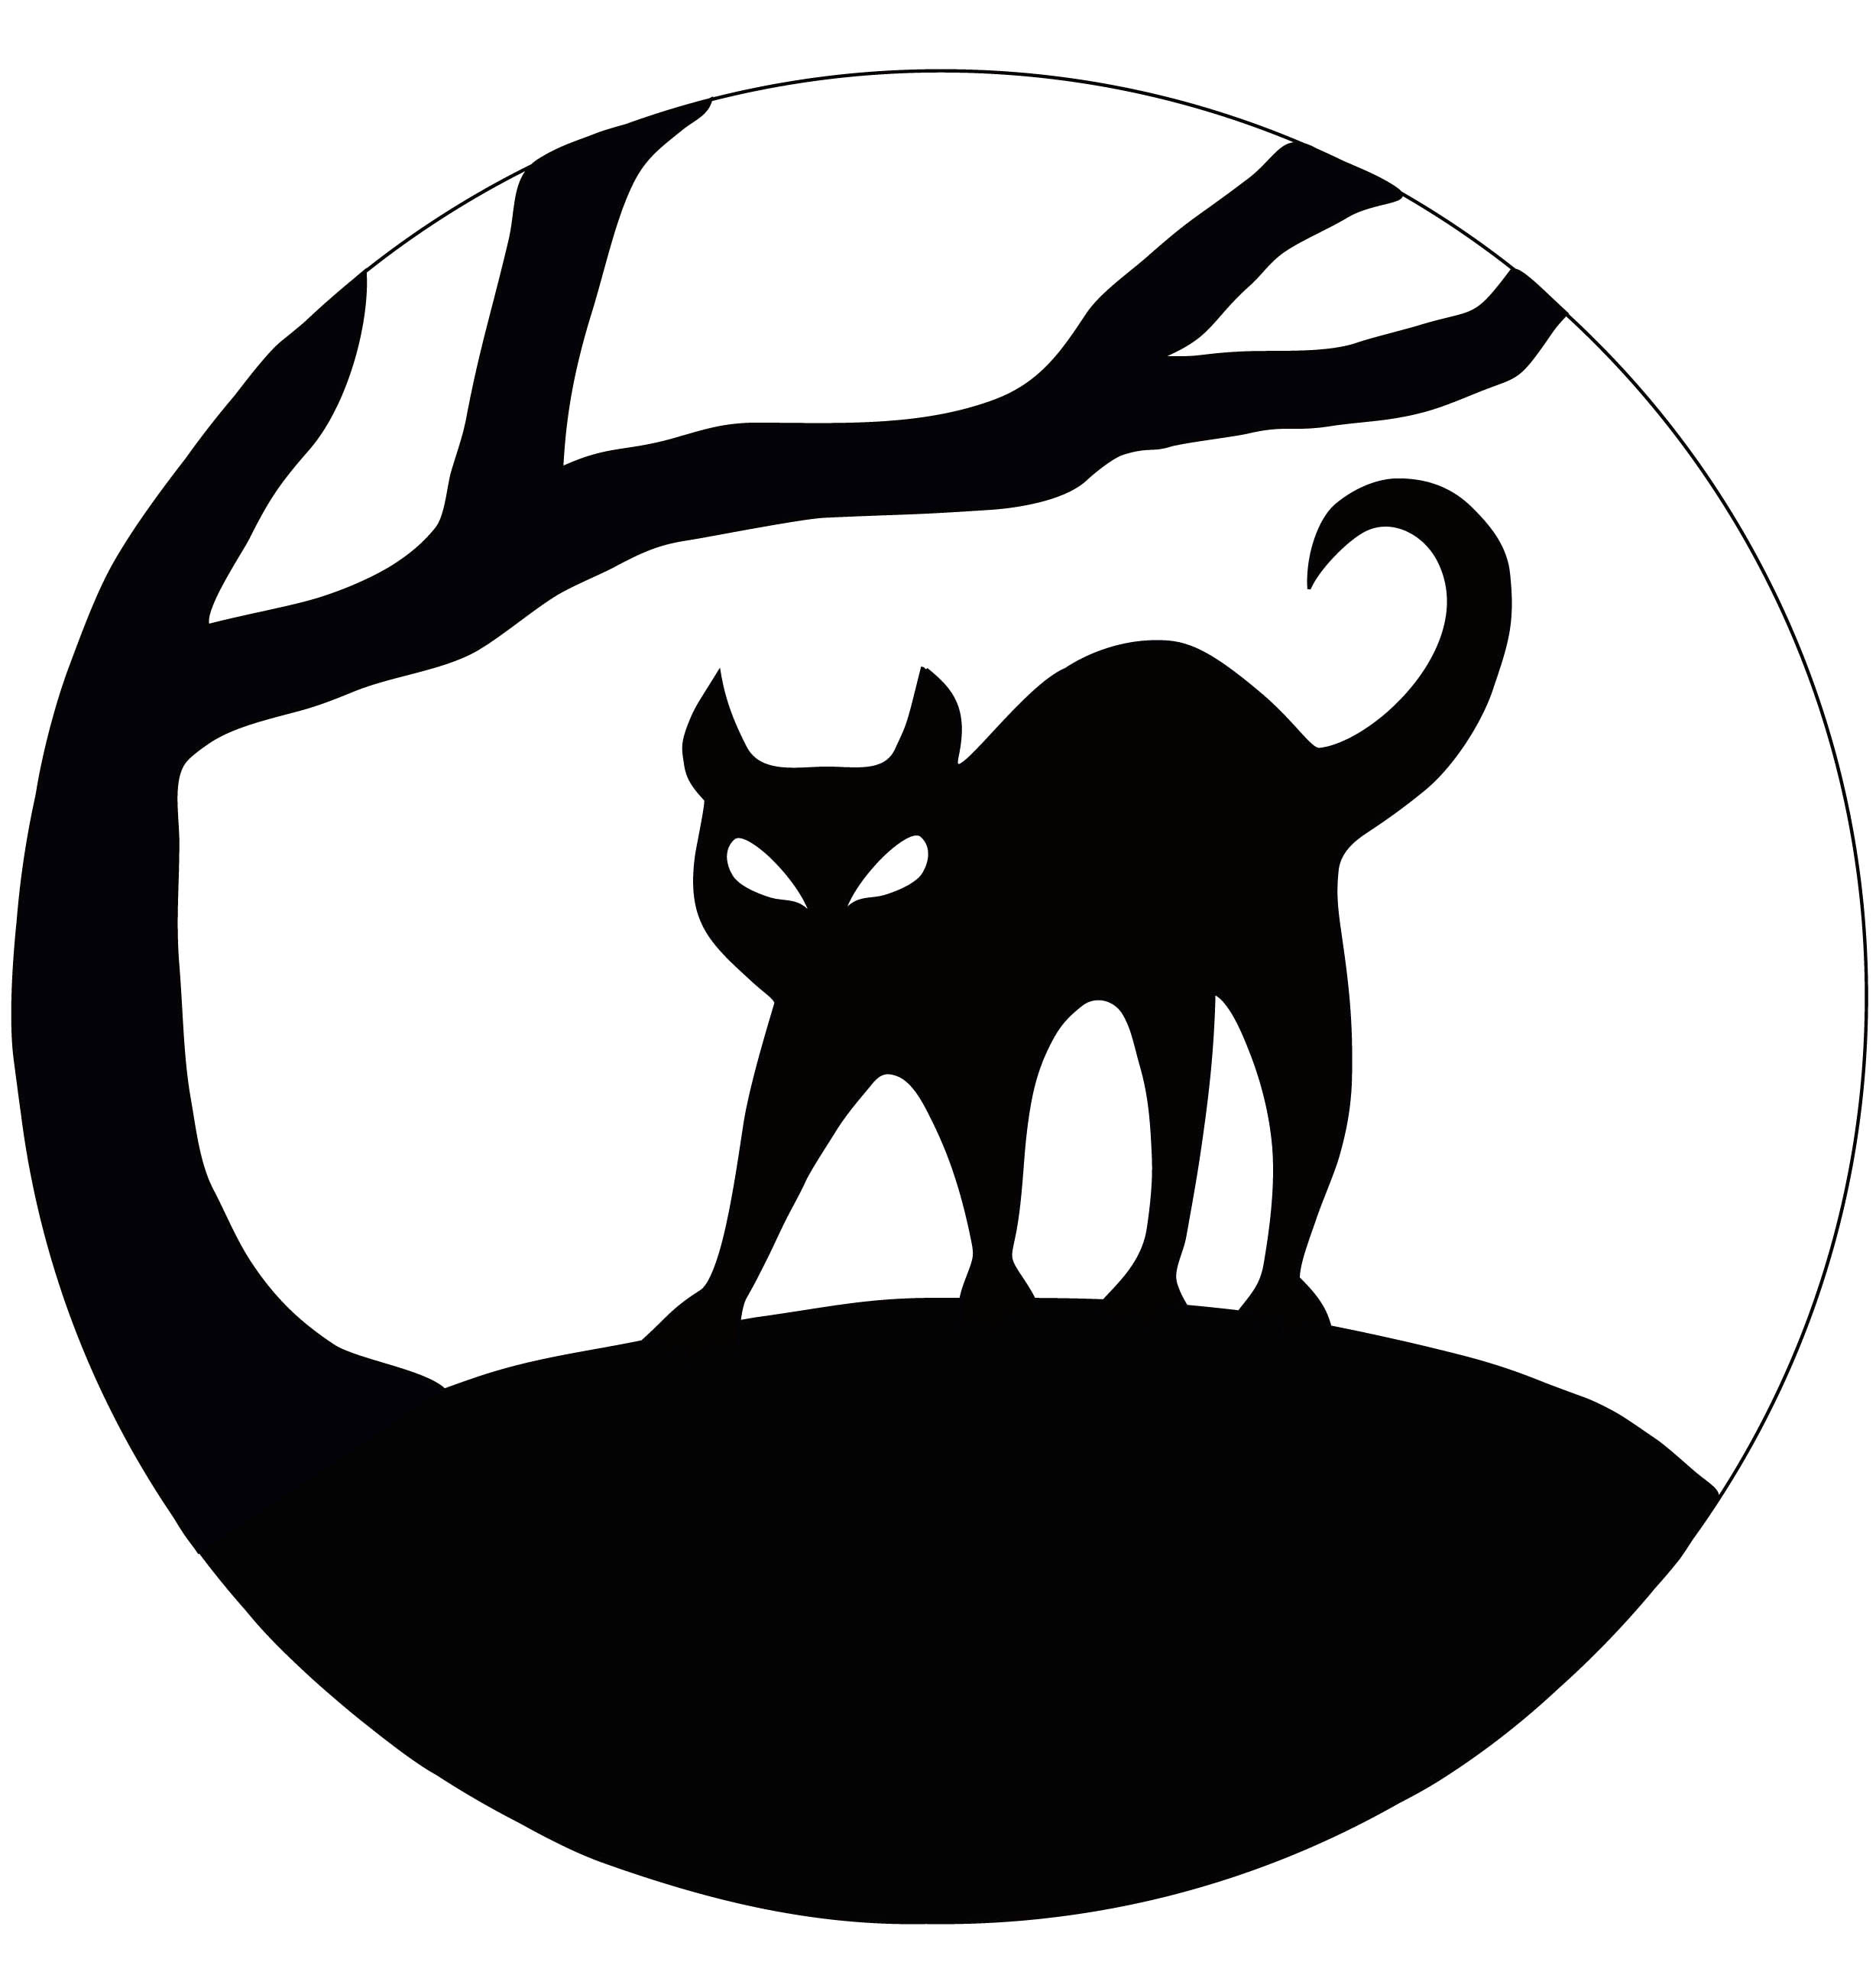 Black Cat Templates for Halloween Interactive Image Of Accessories for Halloween Decoration